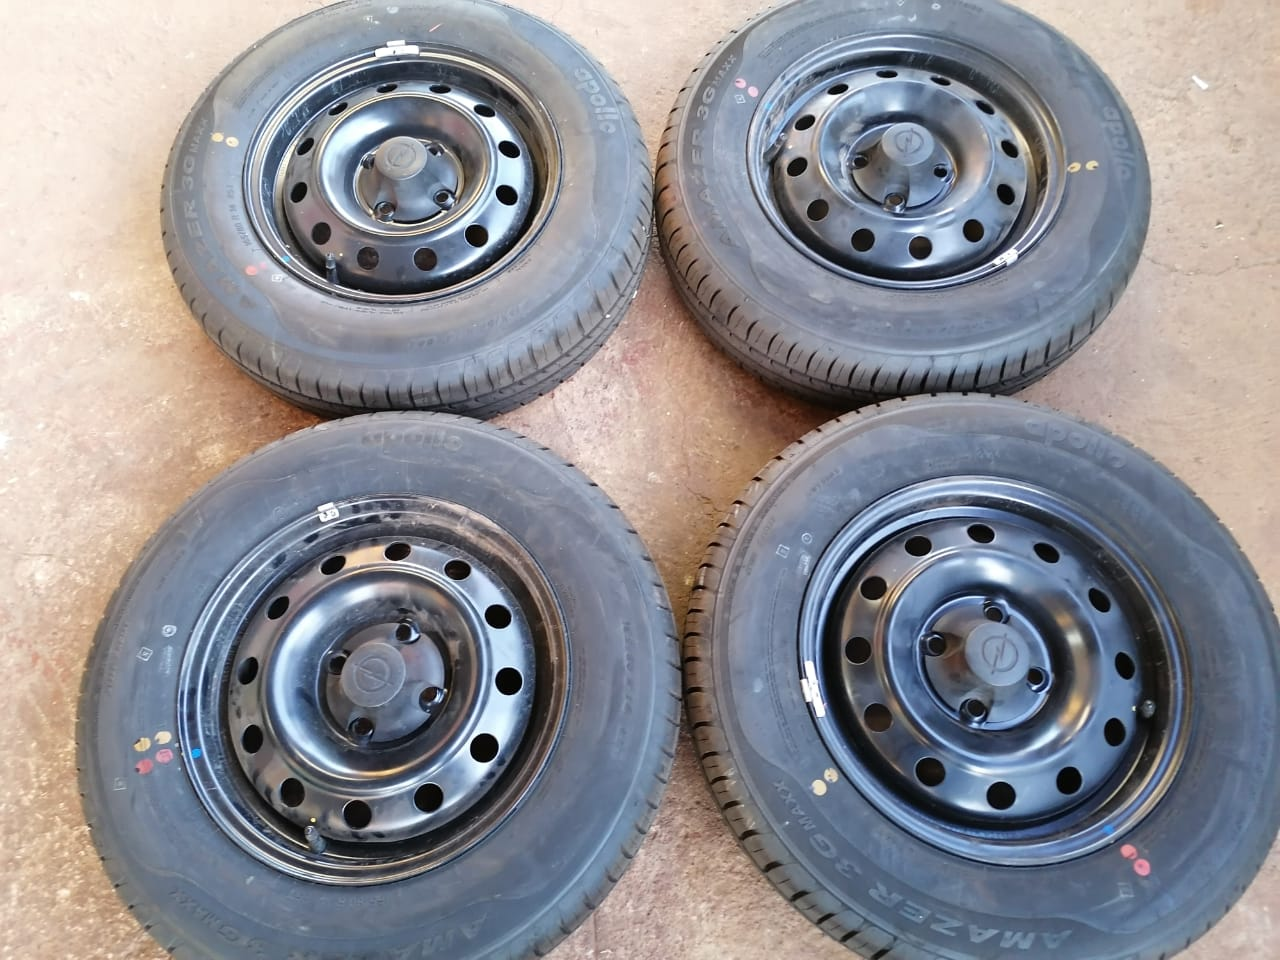 14inch tyres for sale 165-80-14s.    For Toyota Corolla runx shape